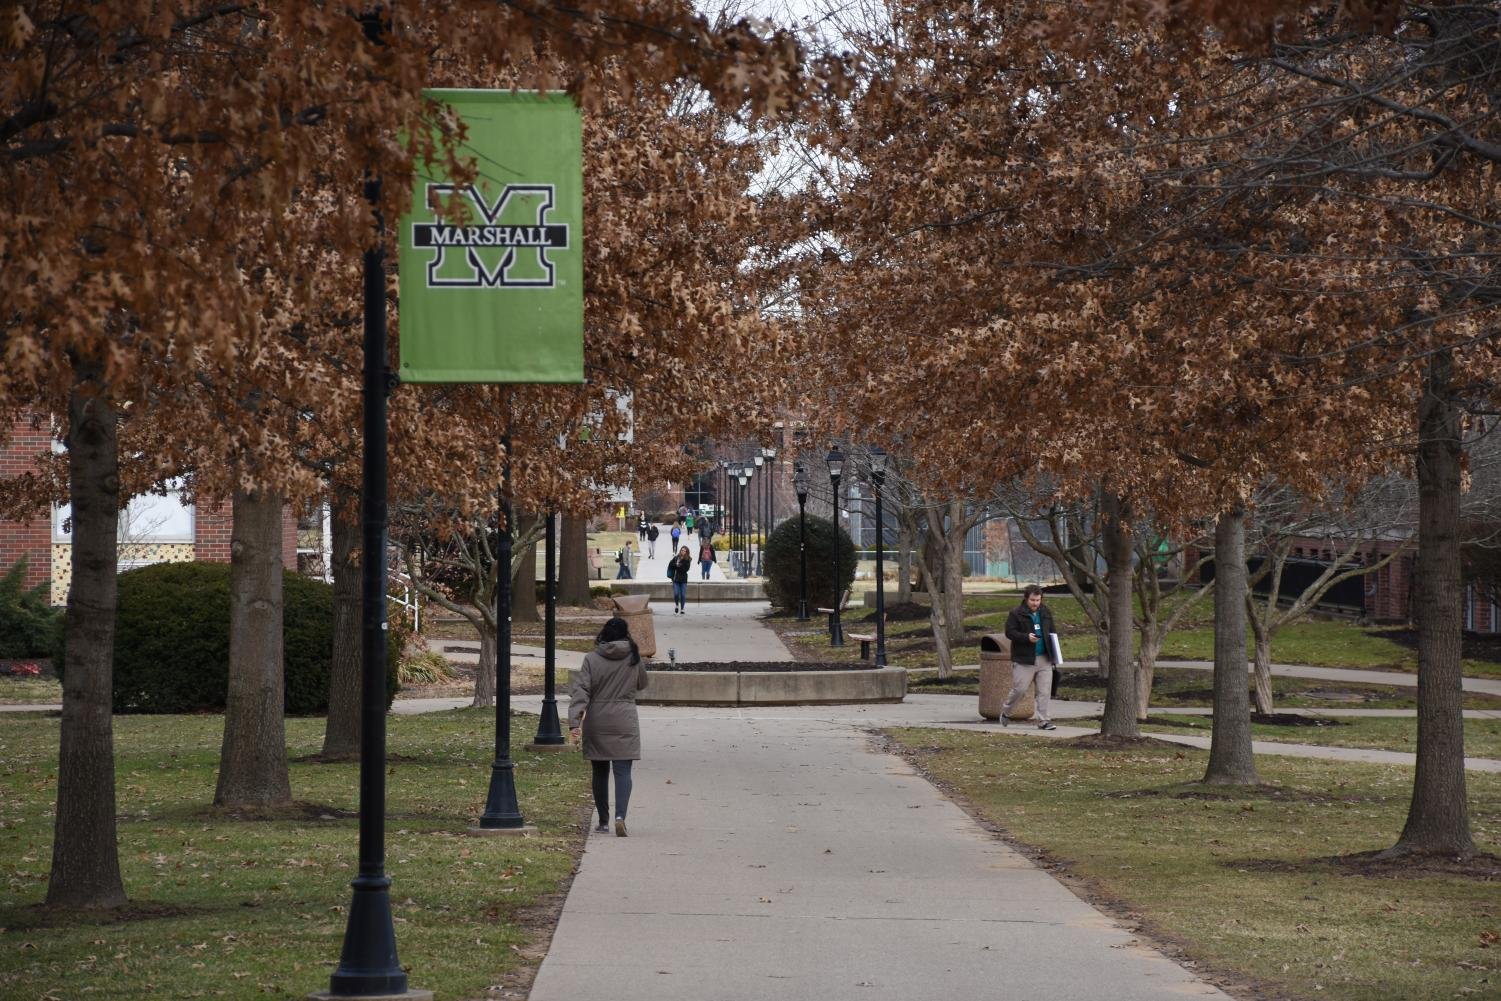 Students walking through campus Monday evening.